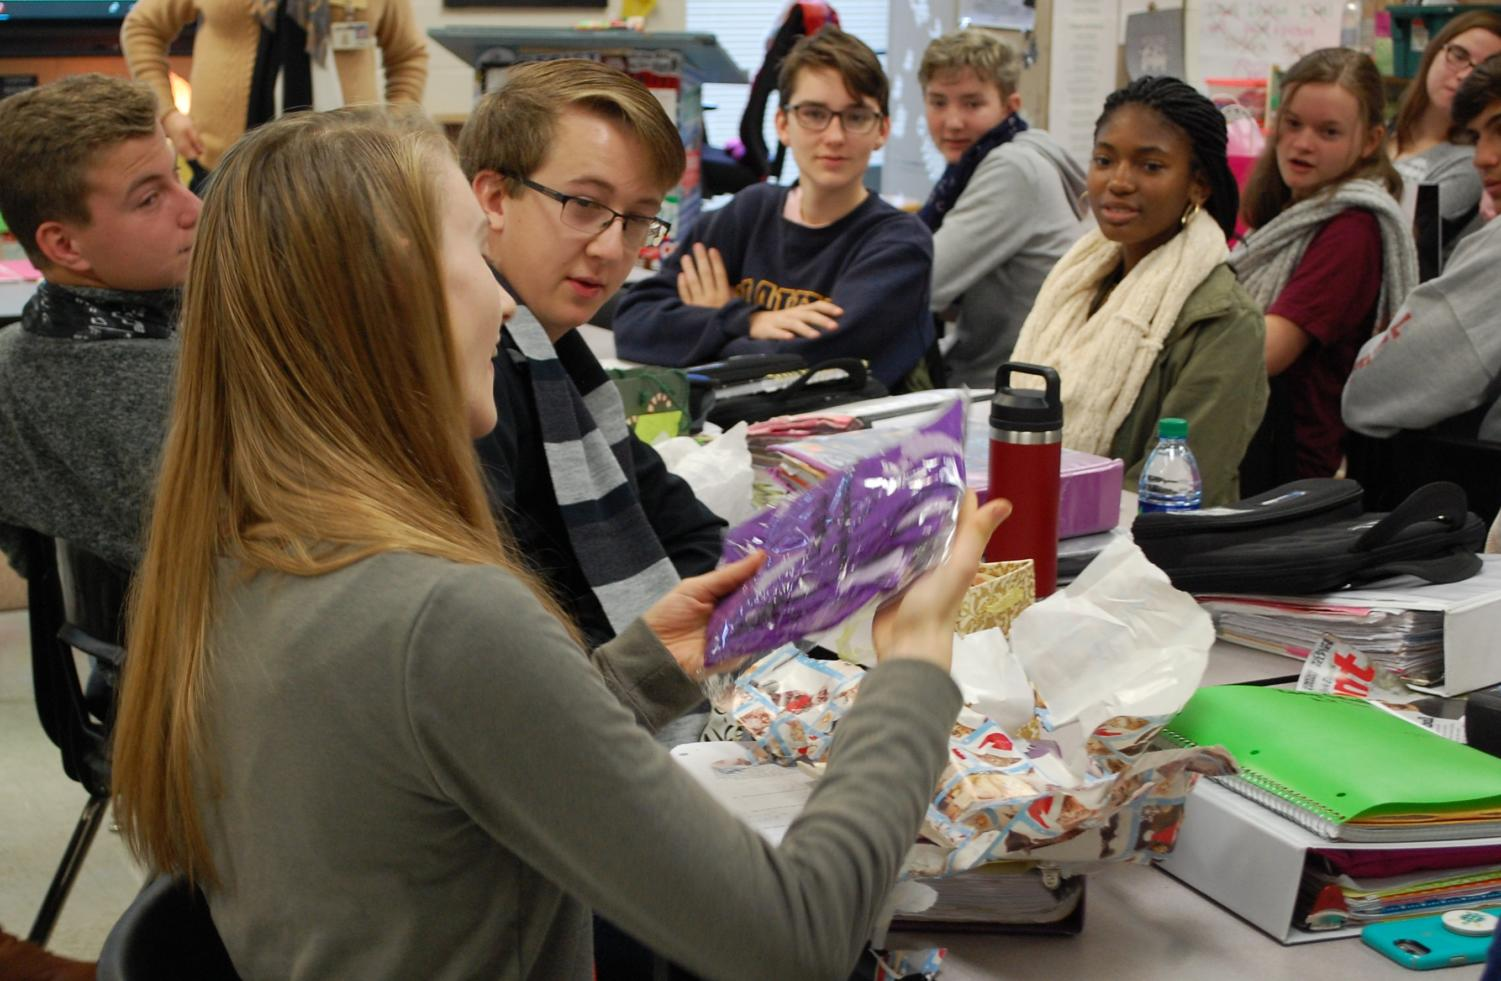 Students watch intently as classmate Rebecca Zack unwraps her scarf.